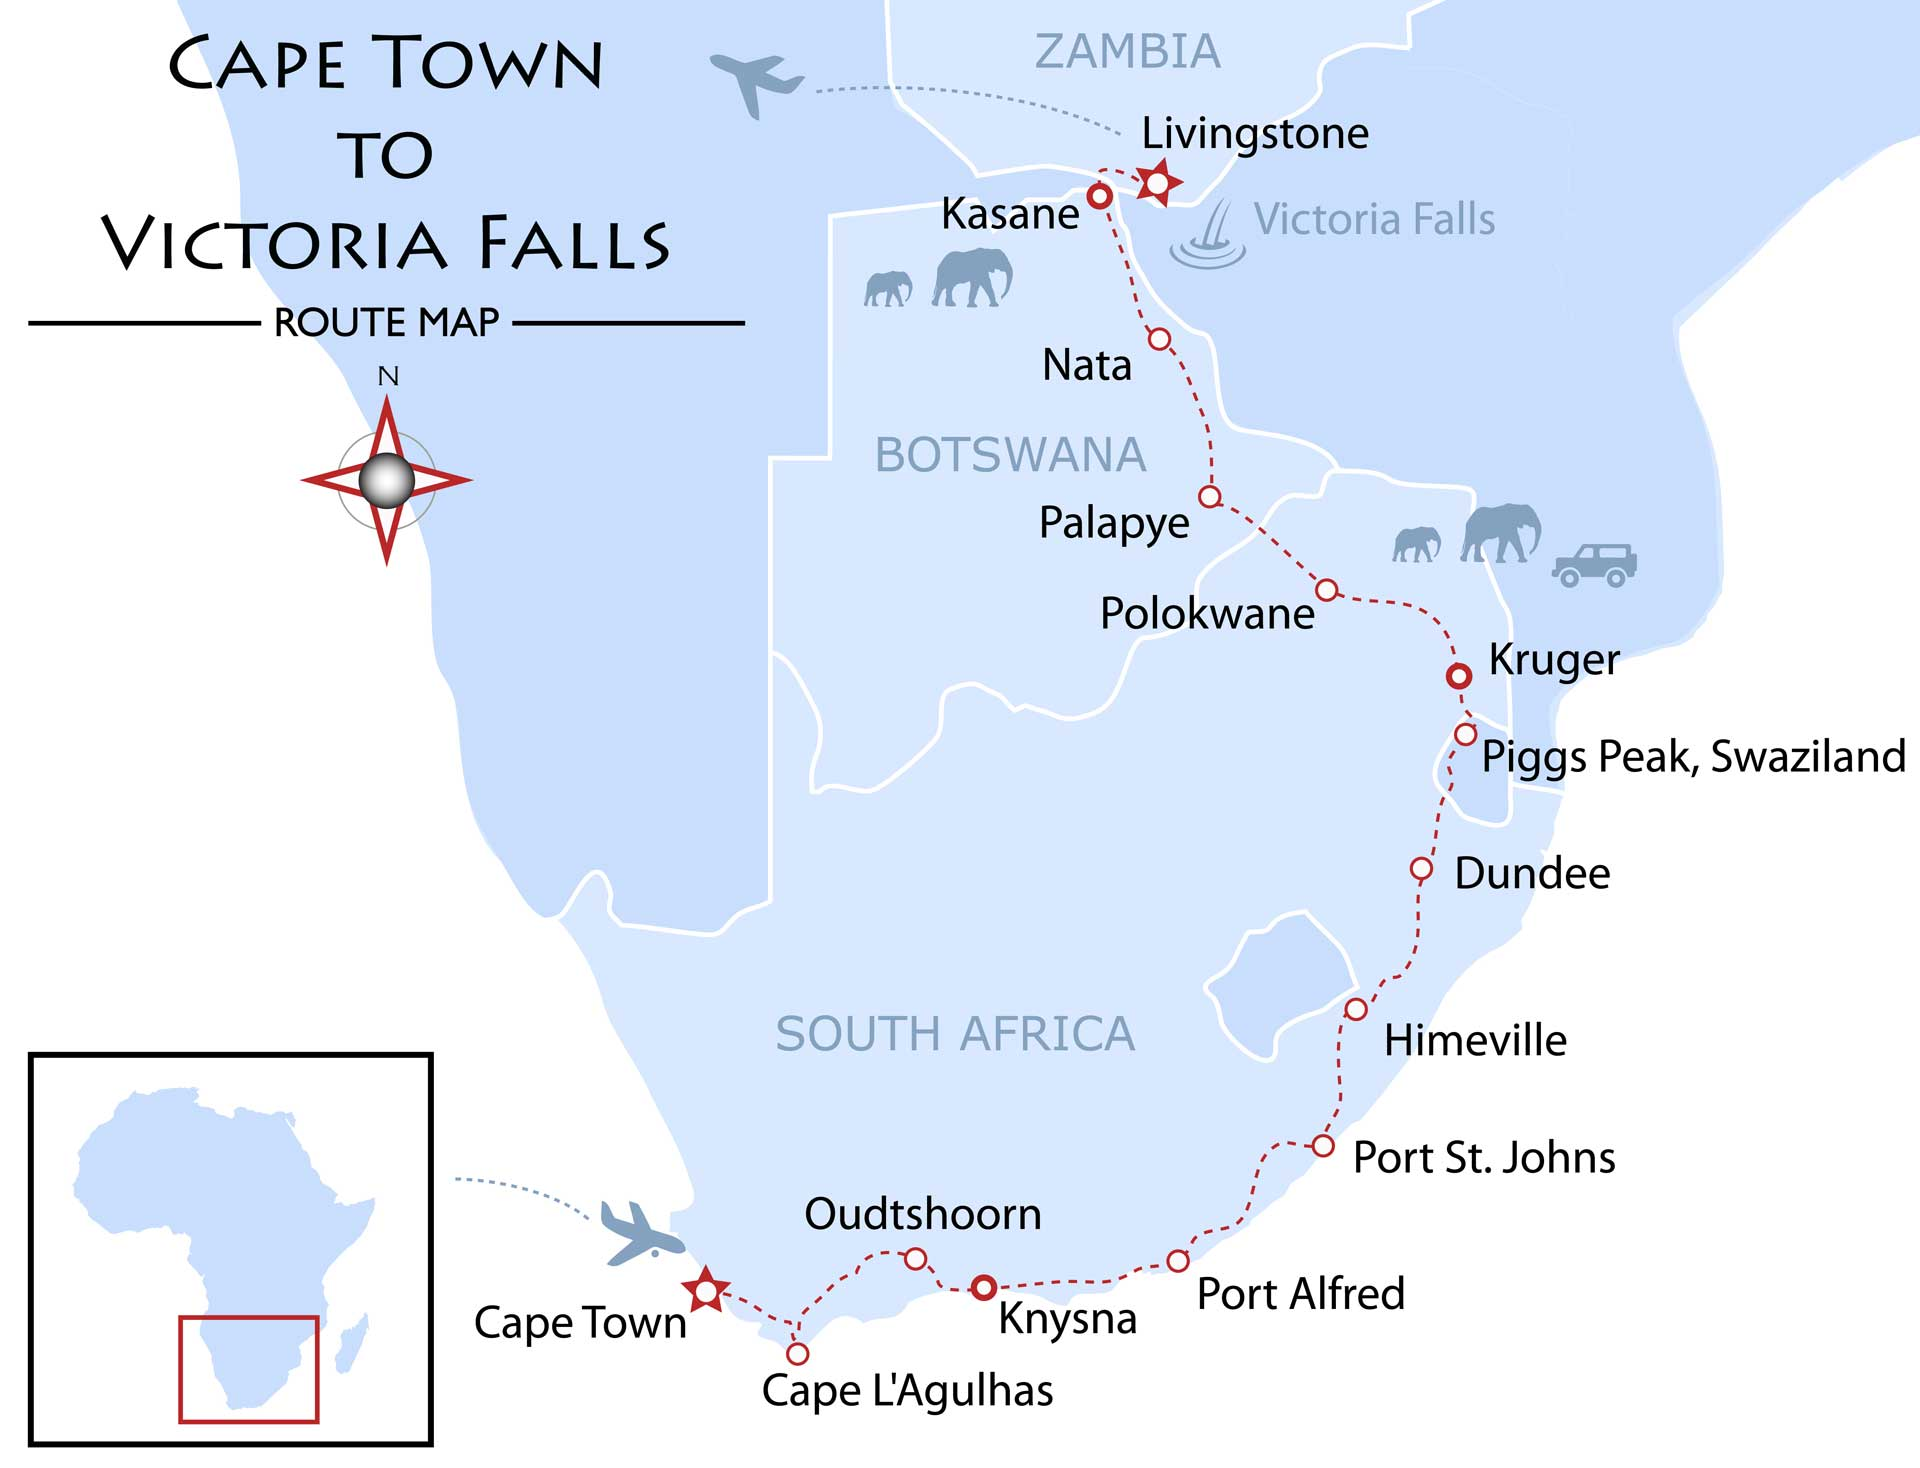 Cape Town to Victoria Falls Map